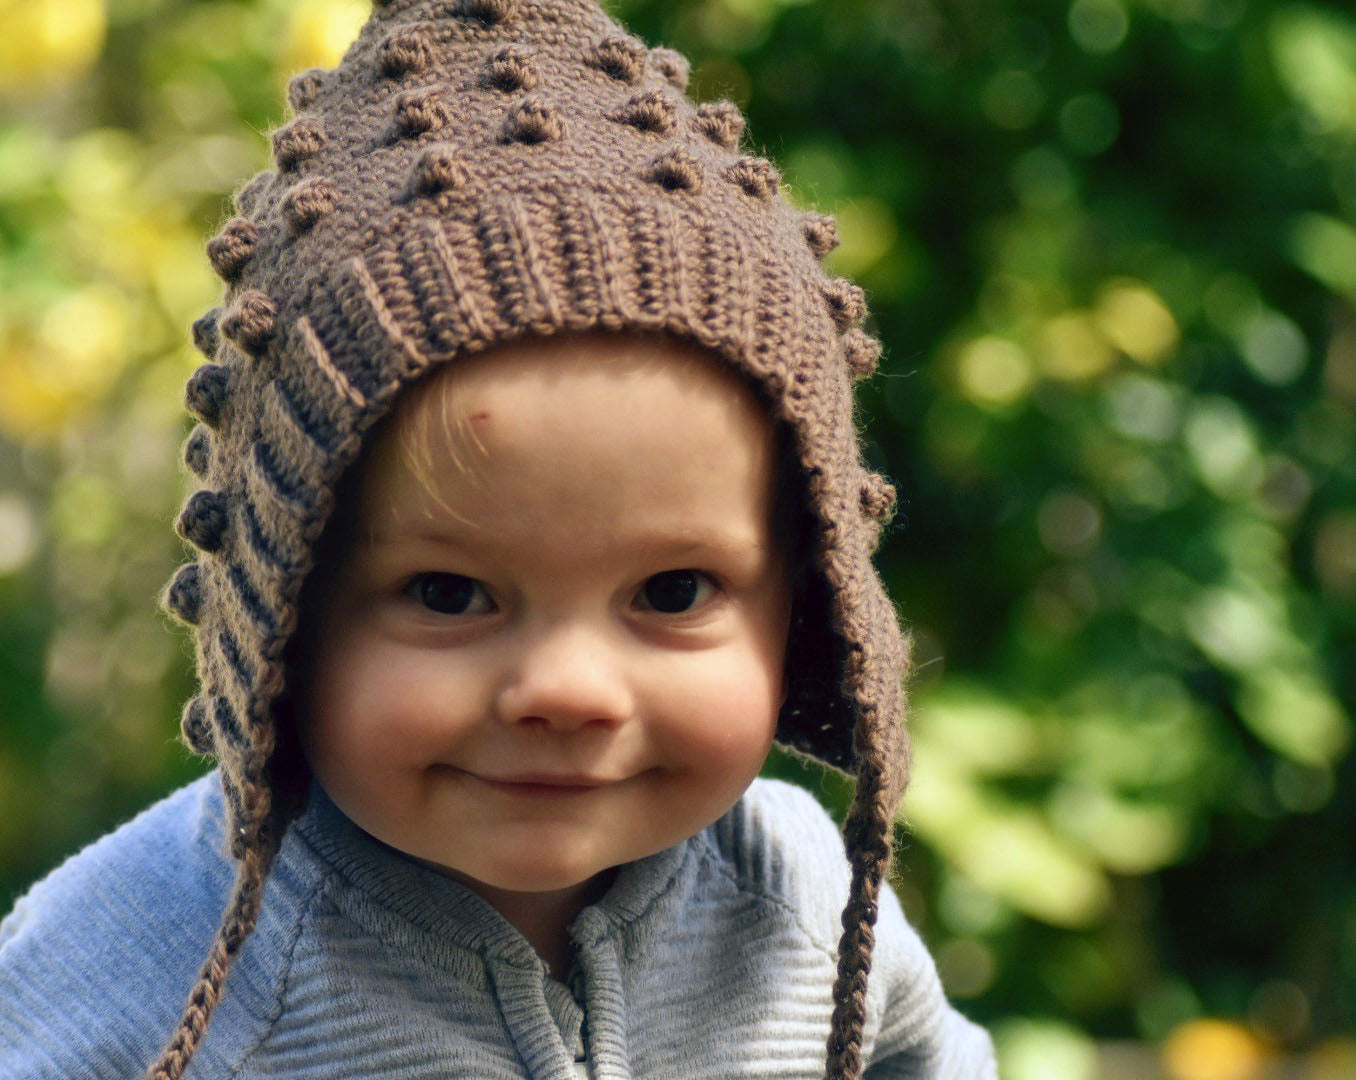 CROCHET PATTERN - Bobble Pixie Bonnet